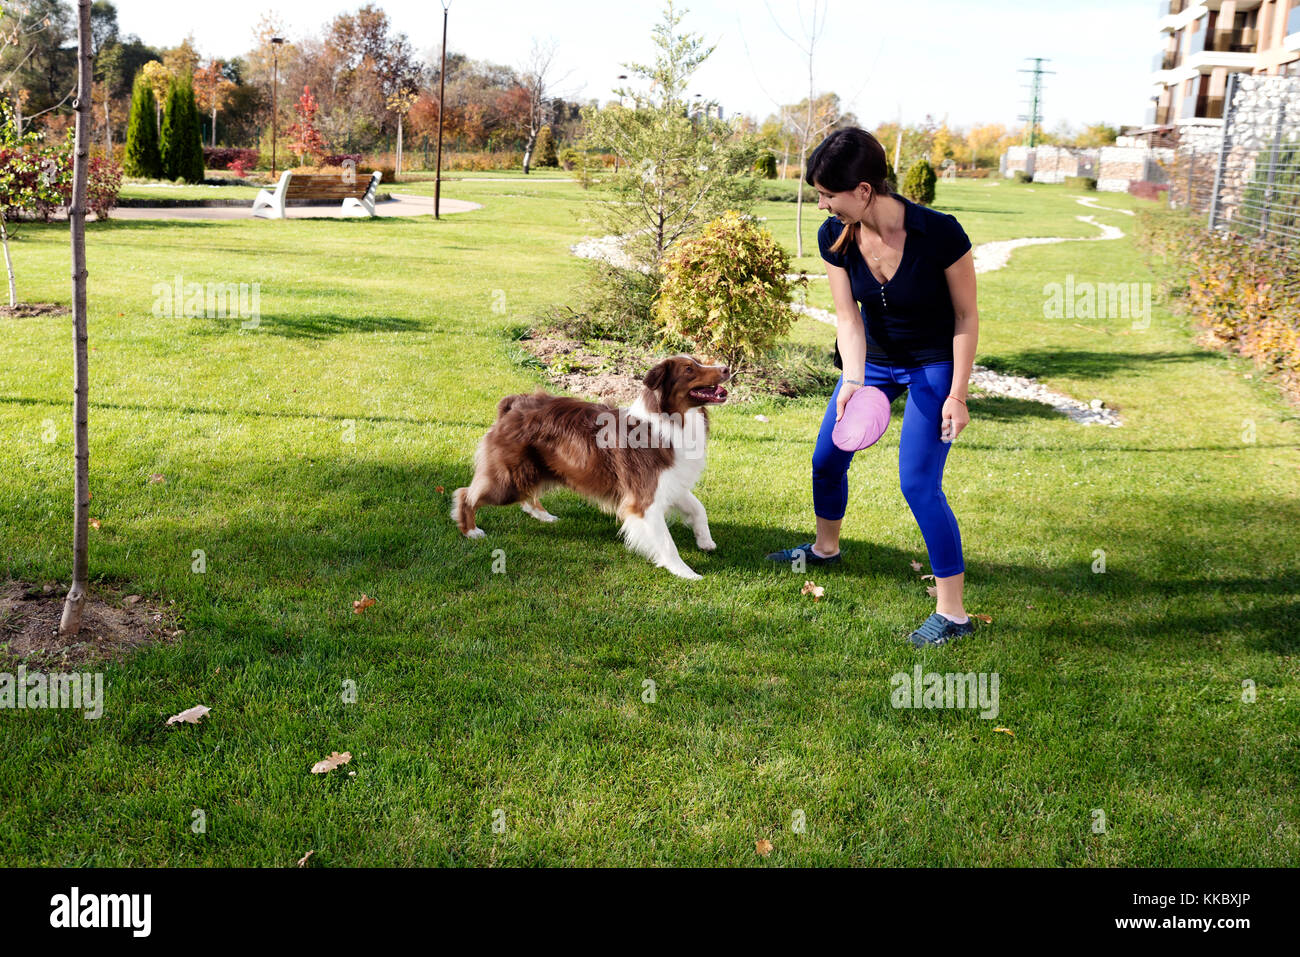 Dog Trainer Fetch Play - Stock Image